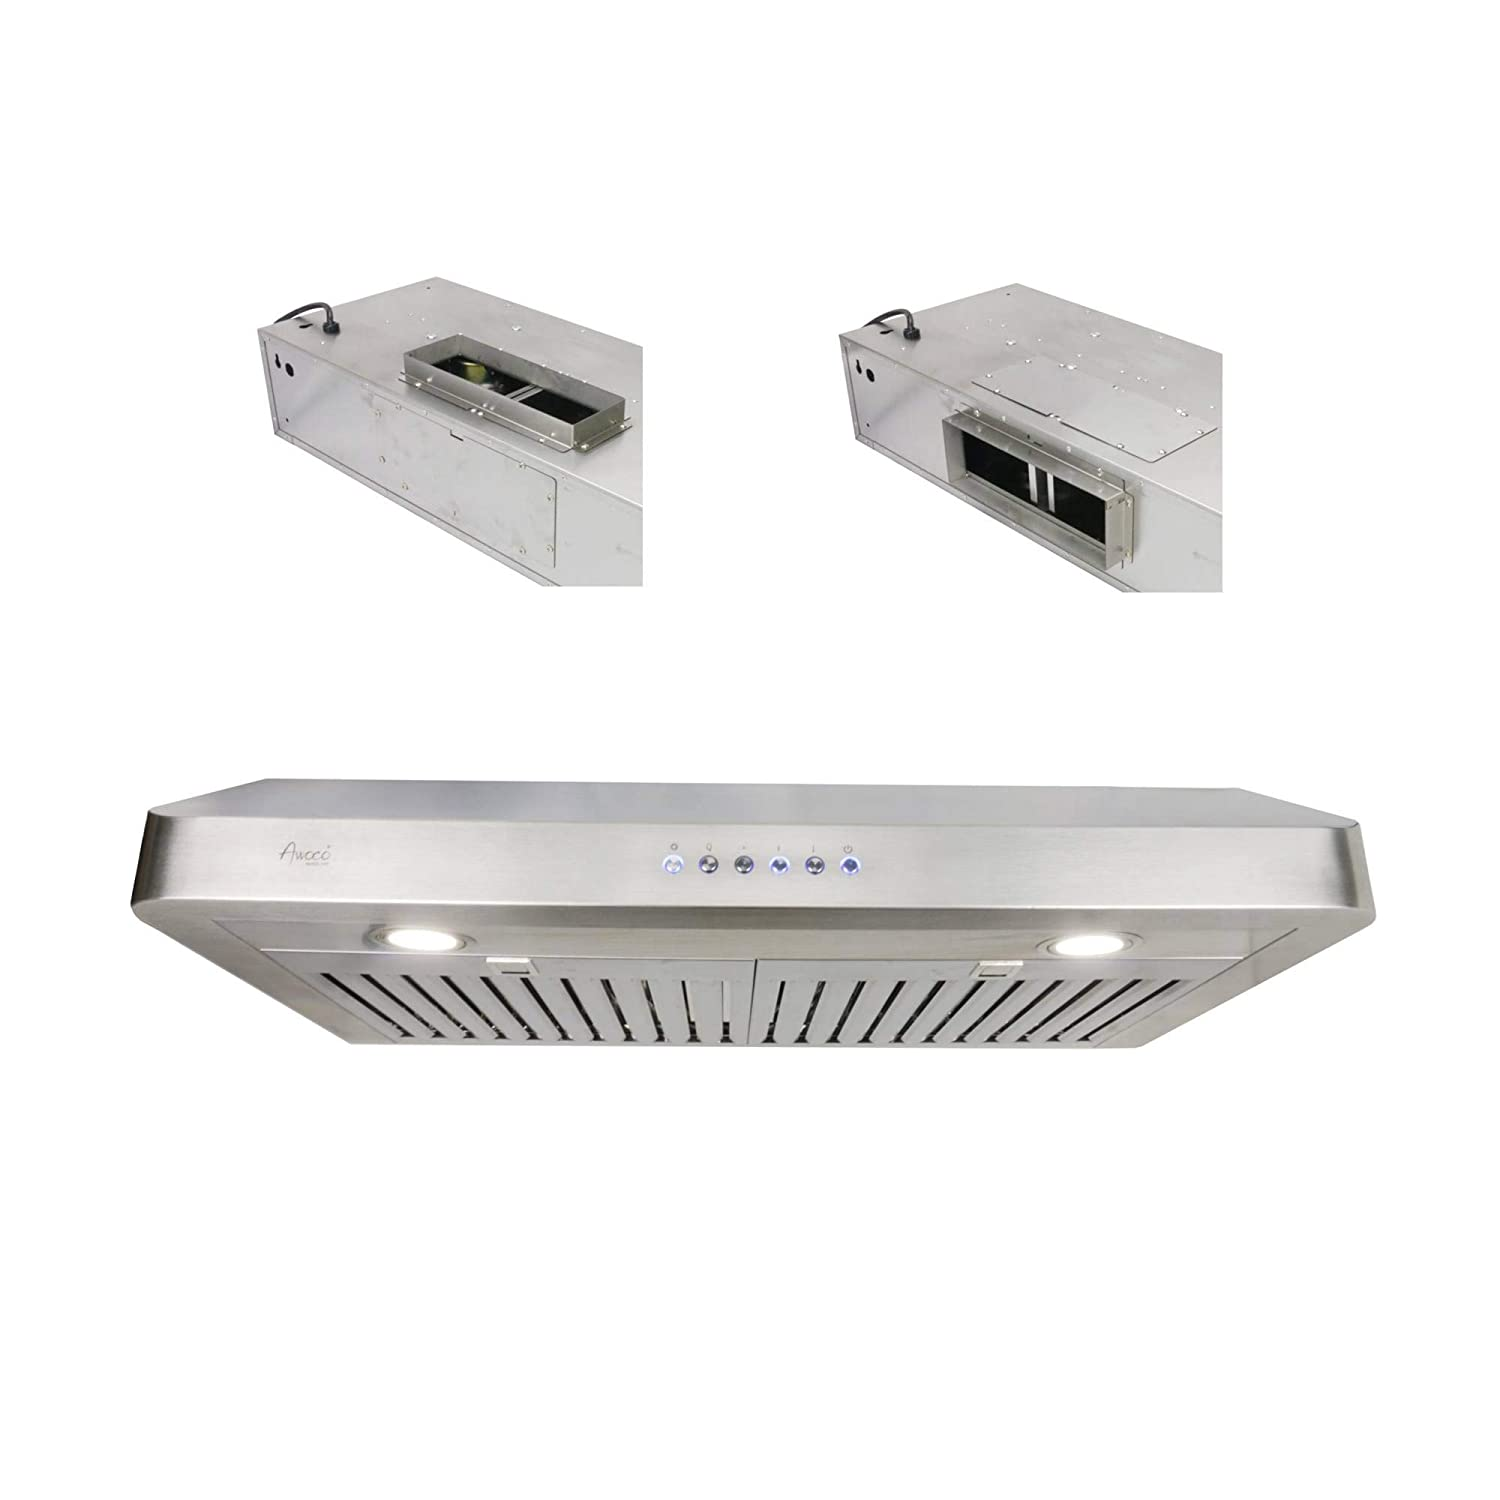 "Awoco RH-R06 Rectangle Vent 6"" High Stainless Steel Under Cabinet 4 Speeds 900CFM Range Hood with LED Lights (30""W Rectangle Vent)"